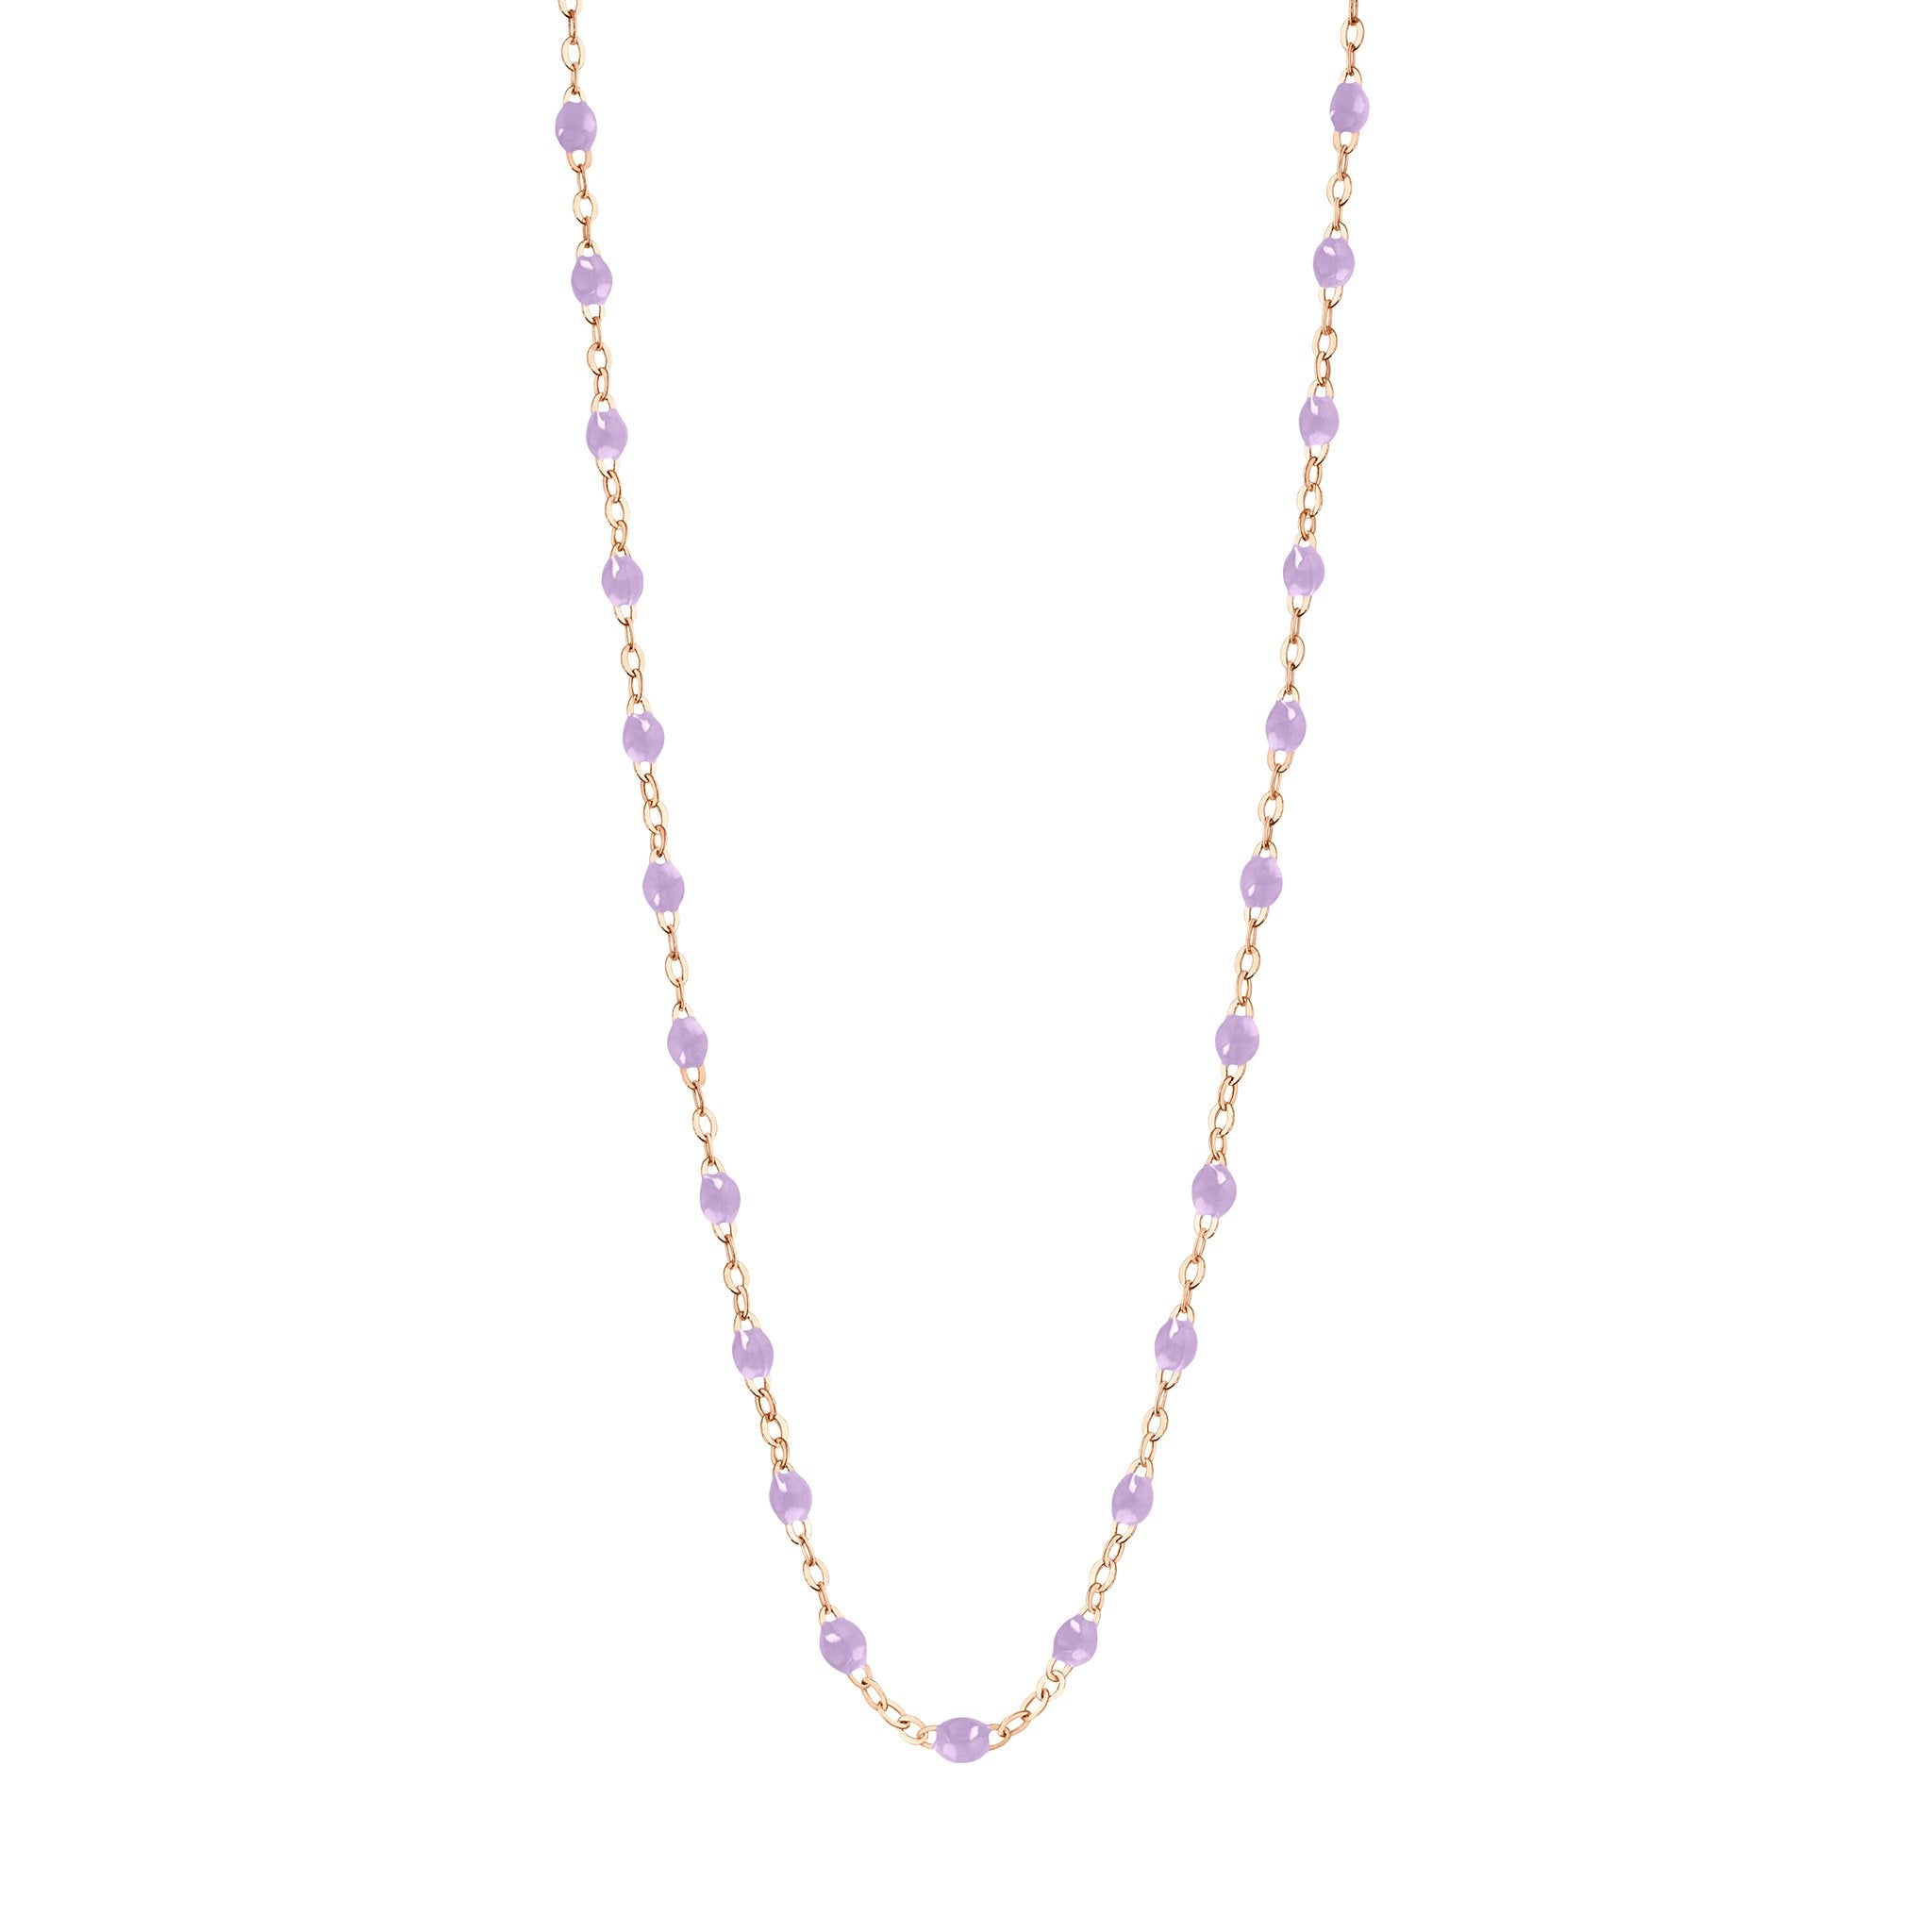 Gigi Clozeau - Classic Gigi Lilac necklace, Rose Gold, 16.5""